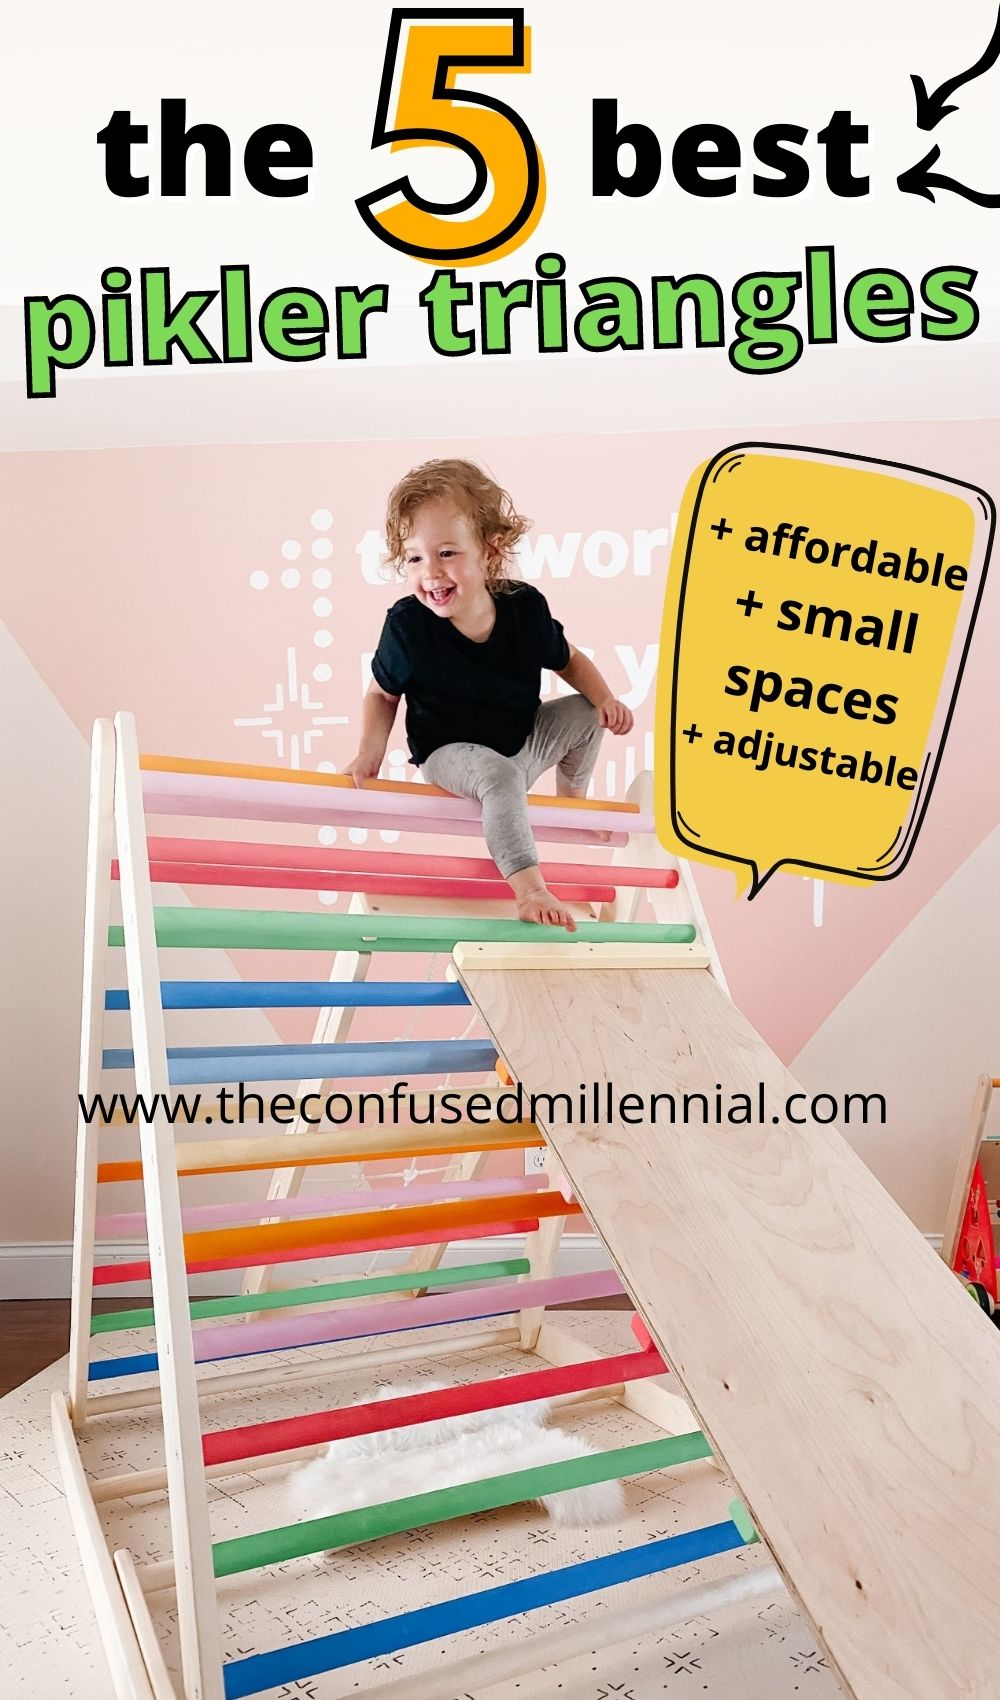 Discover the best pikler triangles for small spaces, affordable, indoor and outdoor use, foldable, and adjustable. Plus recommendations for pikler climbing arch and pikler climbing triangle alternatives!